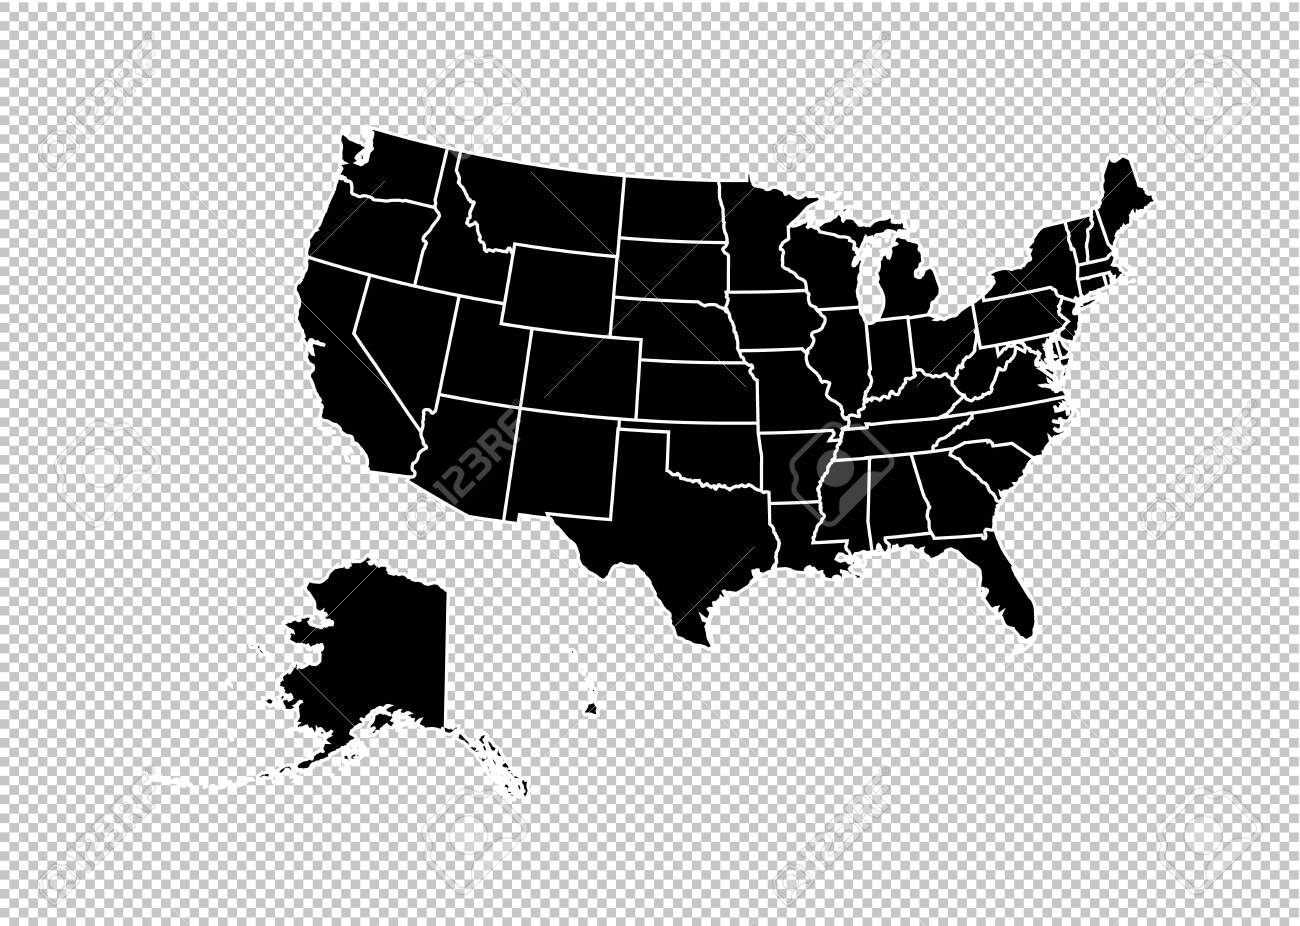 usa map - High detailed Black map with counties/regions/states..